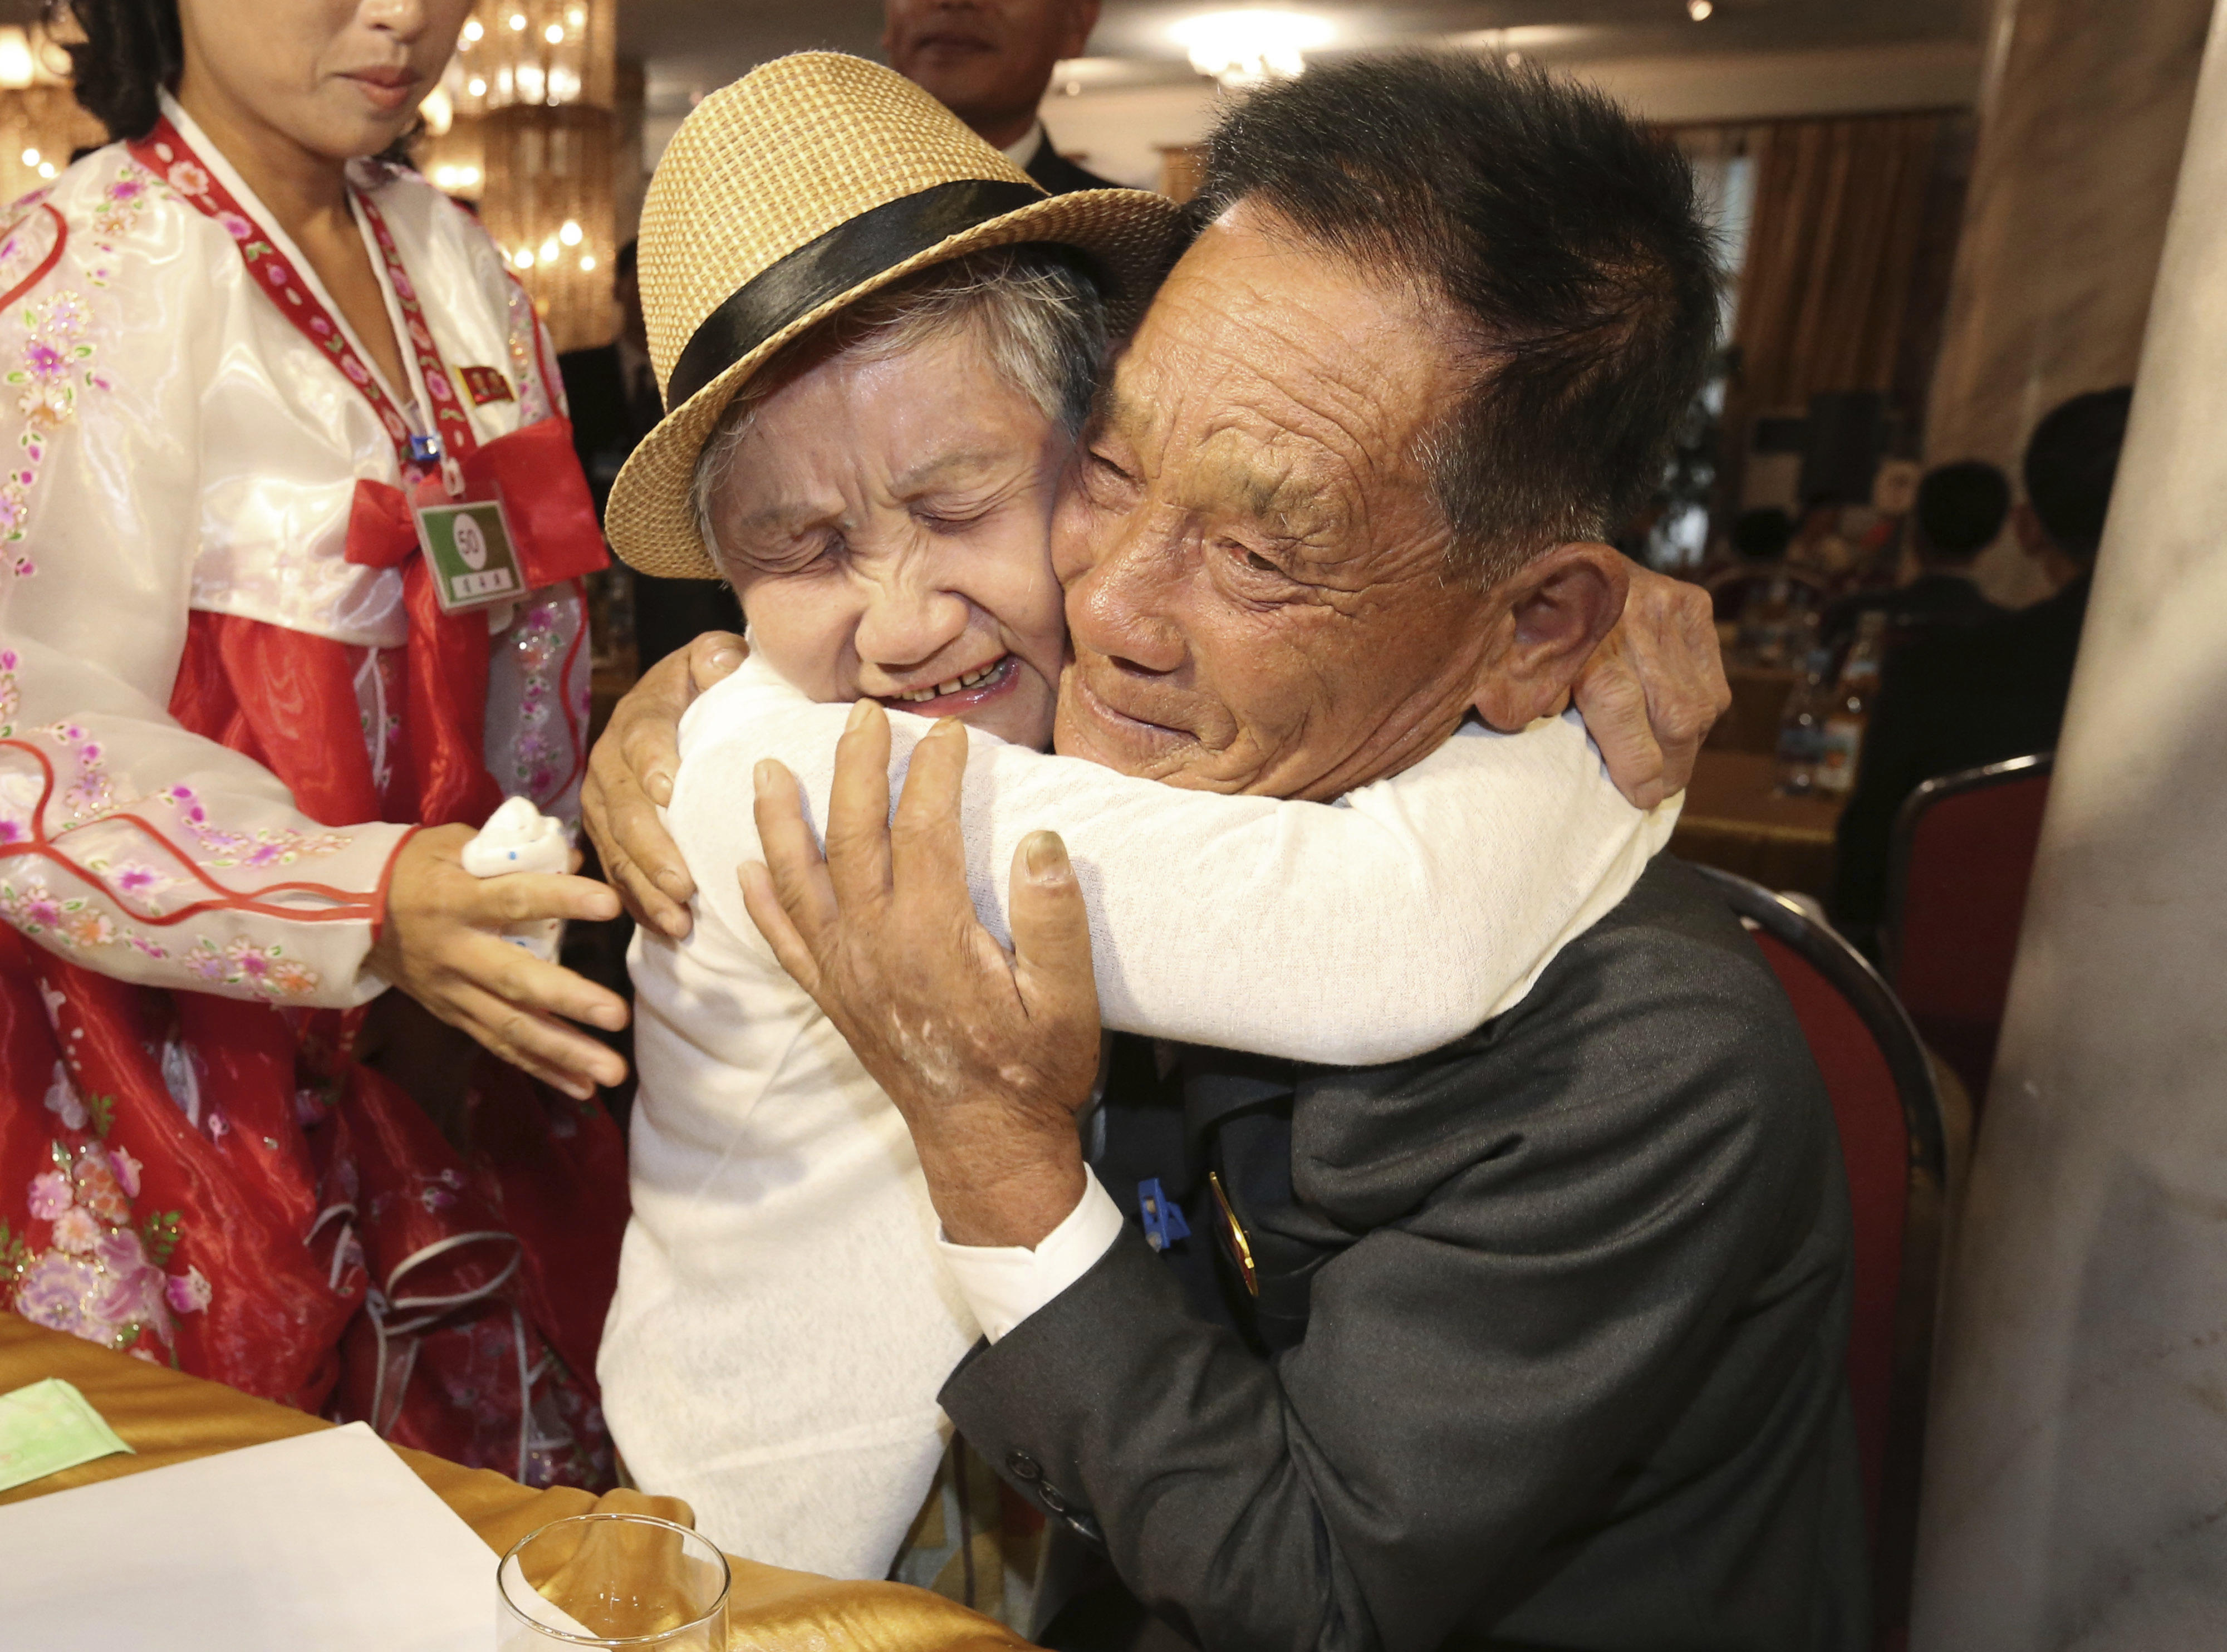 families in north and south korea reunited for first time since